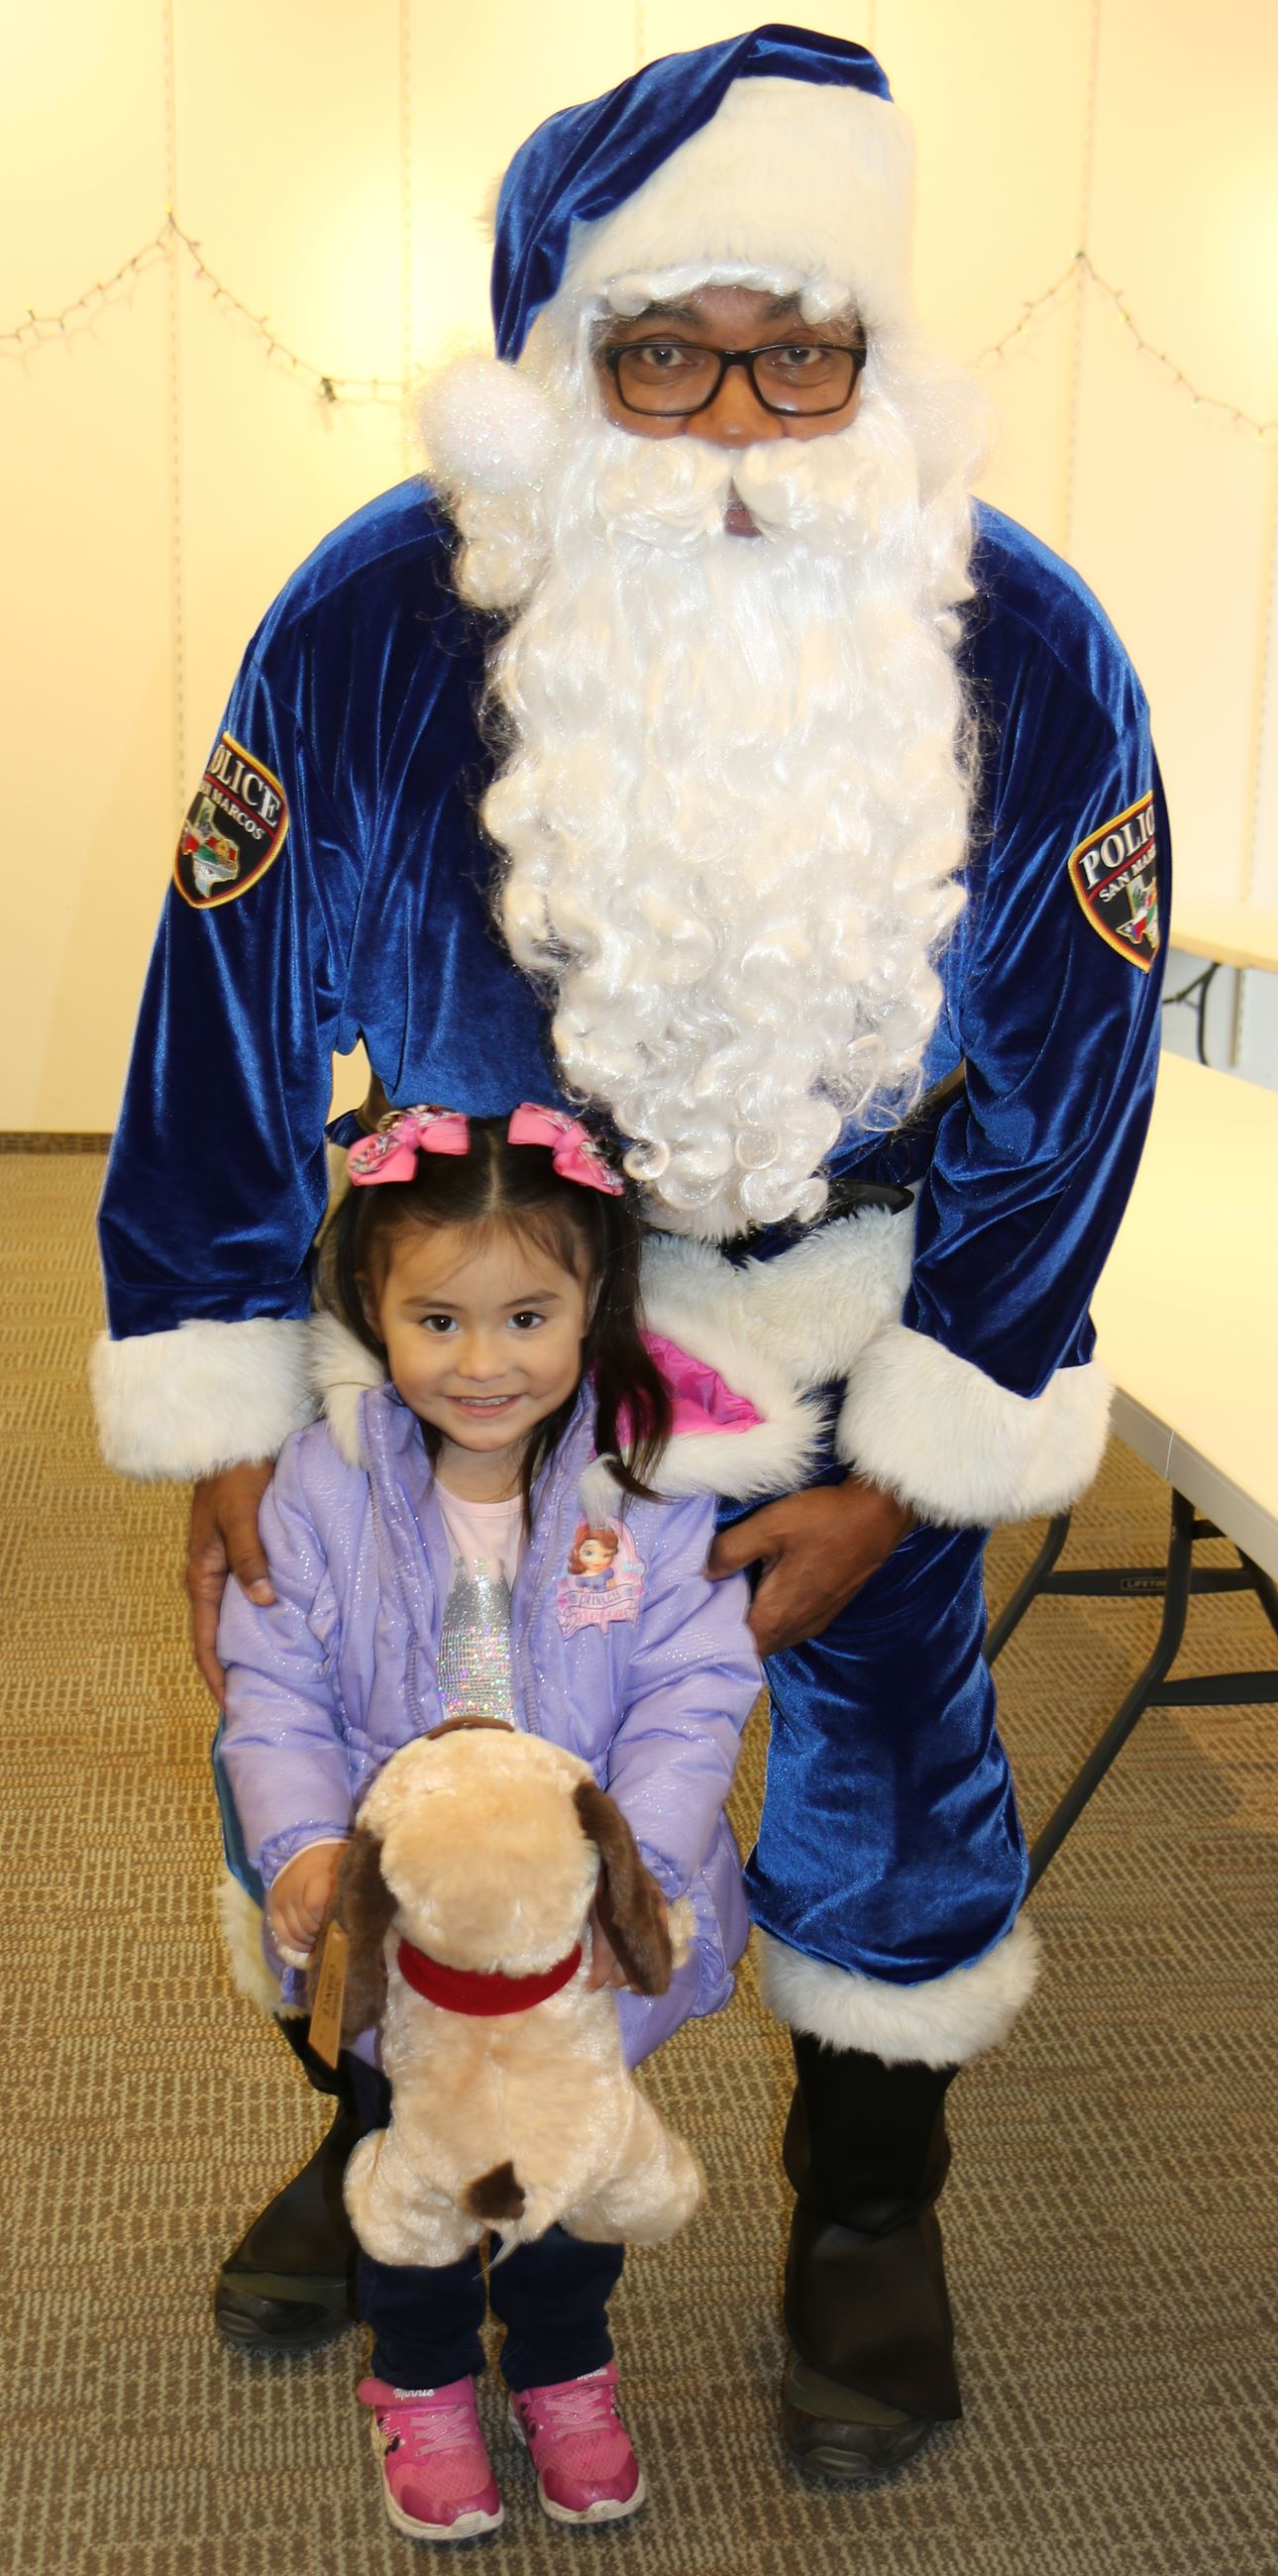 Blue Santa poses with child holding stuffed animal